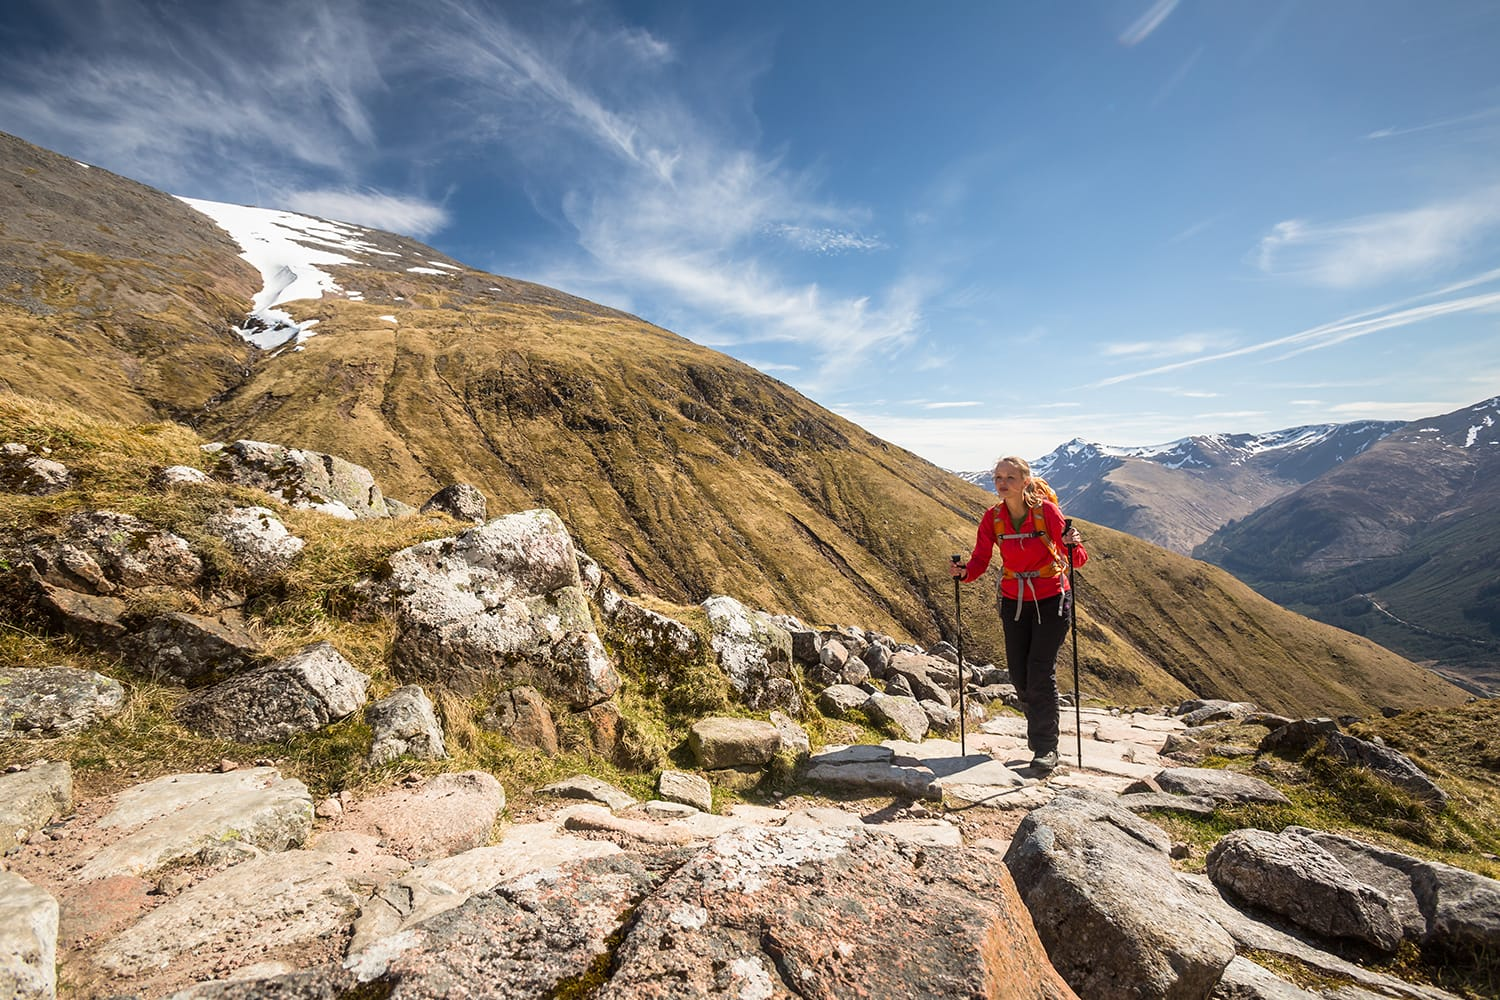 Hiker on Ben Nevis in Scotland, UK